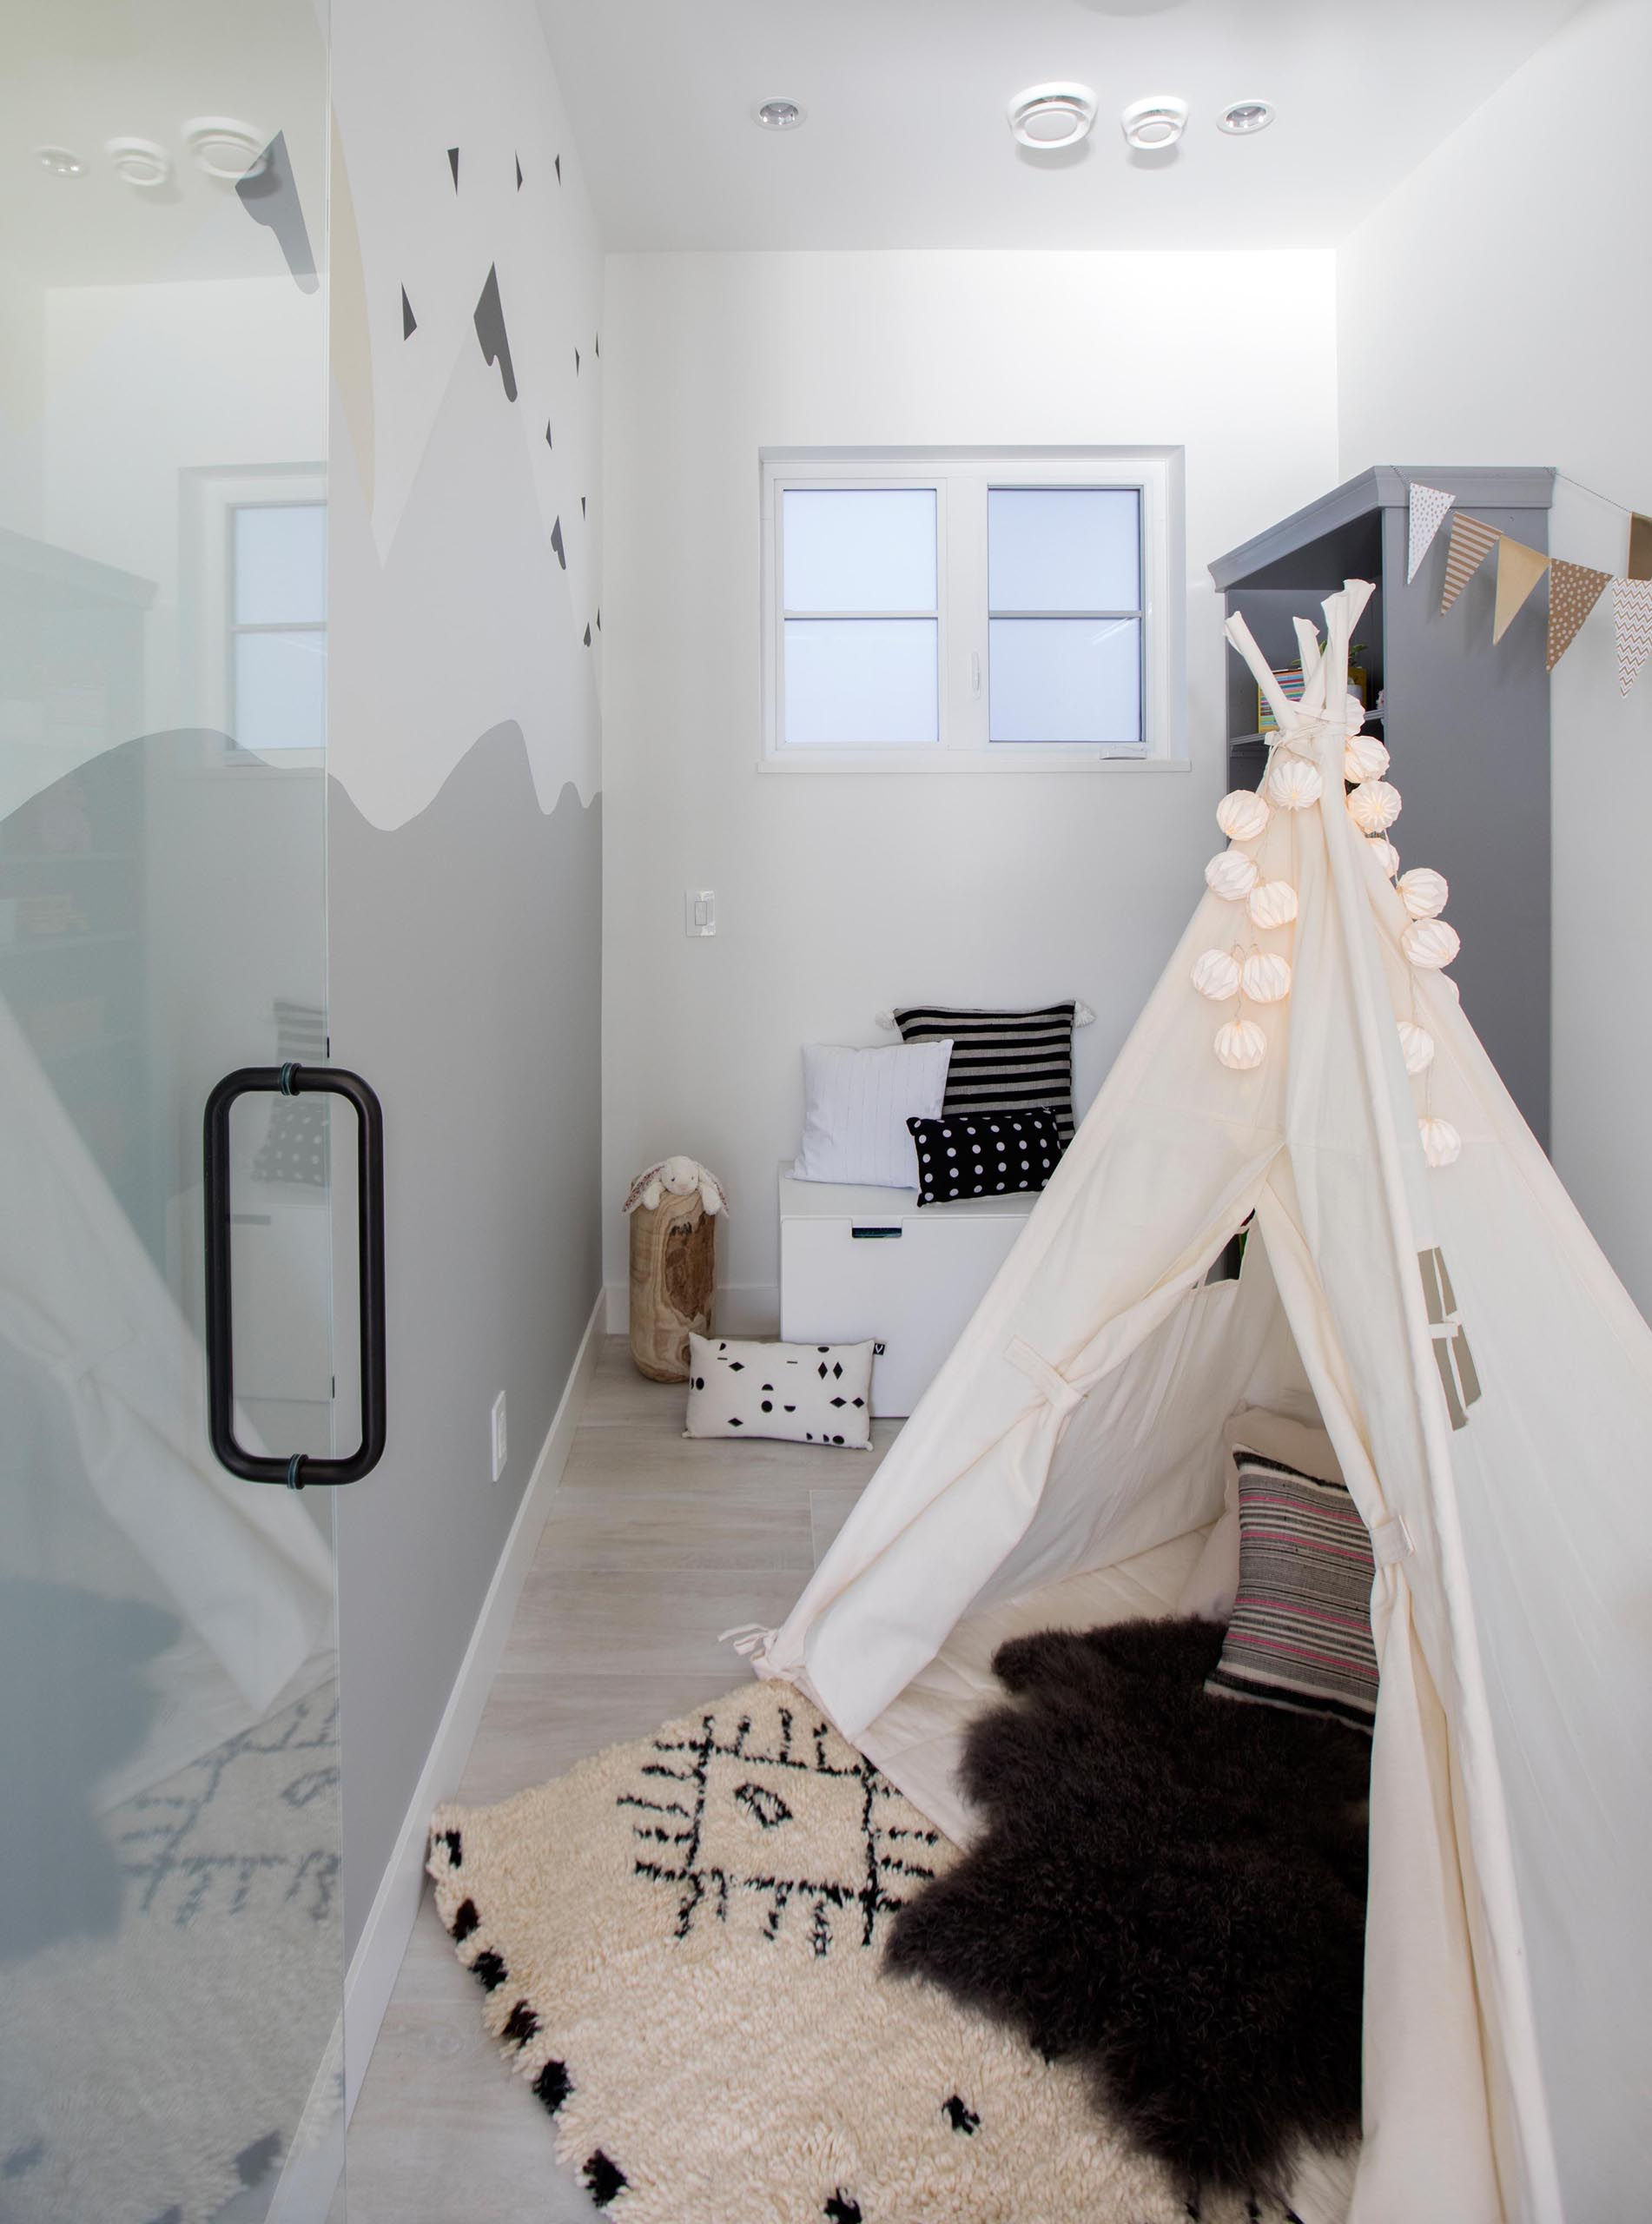 A modern play room with a mountain wall mural, tent, and shelving has been created in a small room.